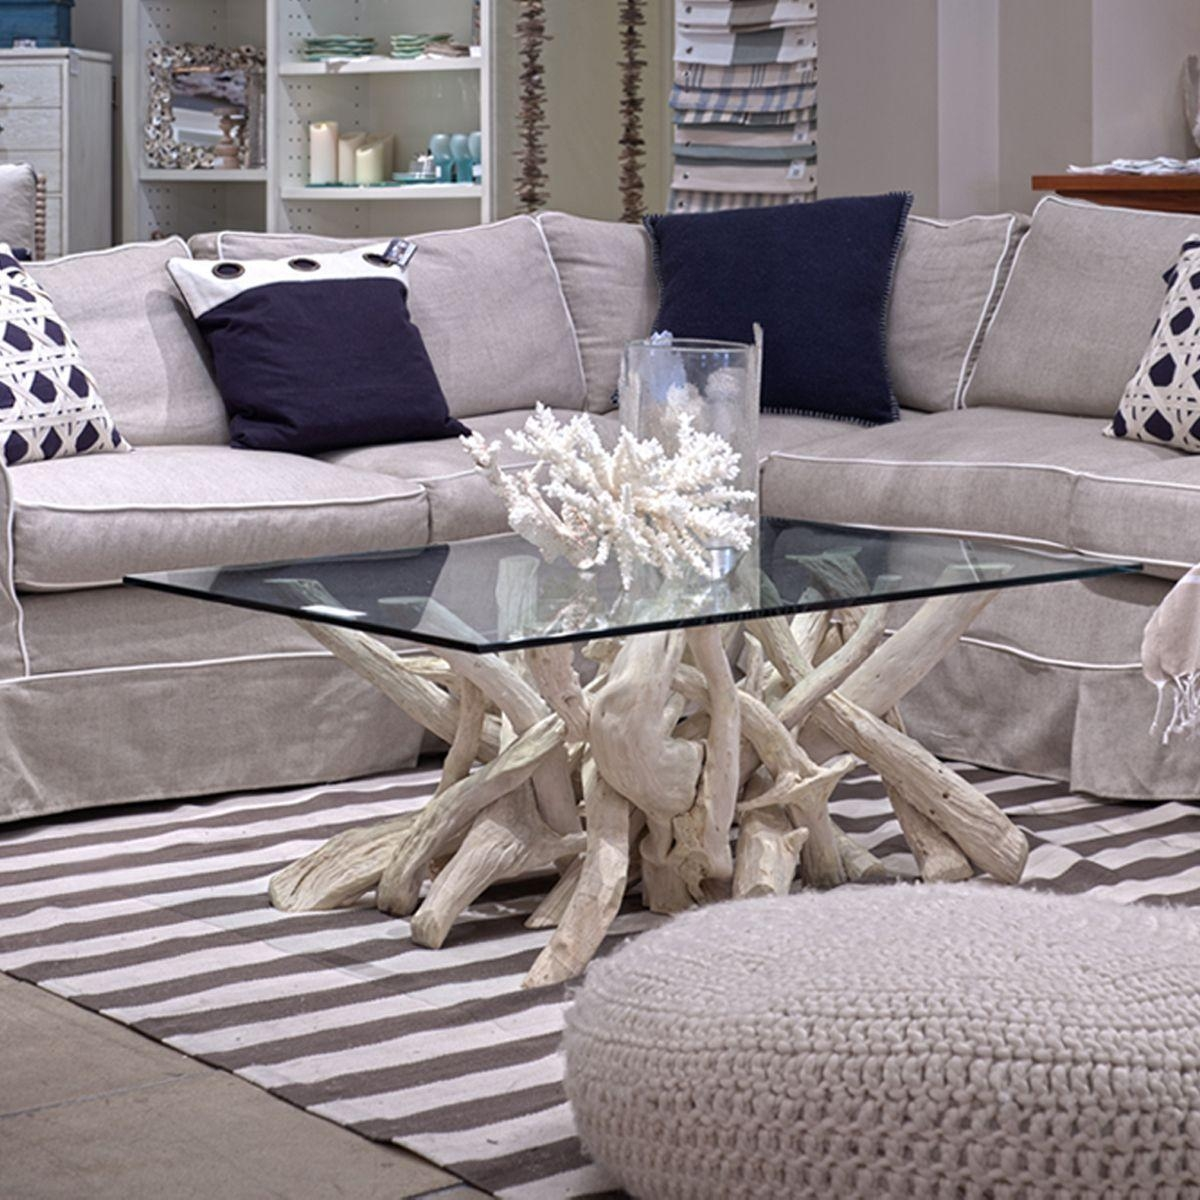 Driftwood Sofa Table | Decorative Table Decoration Regarding Crate And Barrel Sofa Tables (View 9 of 20)